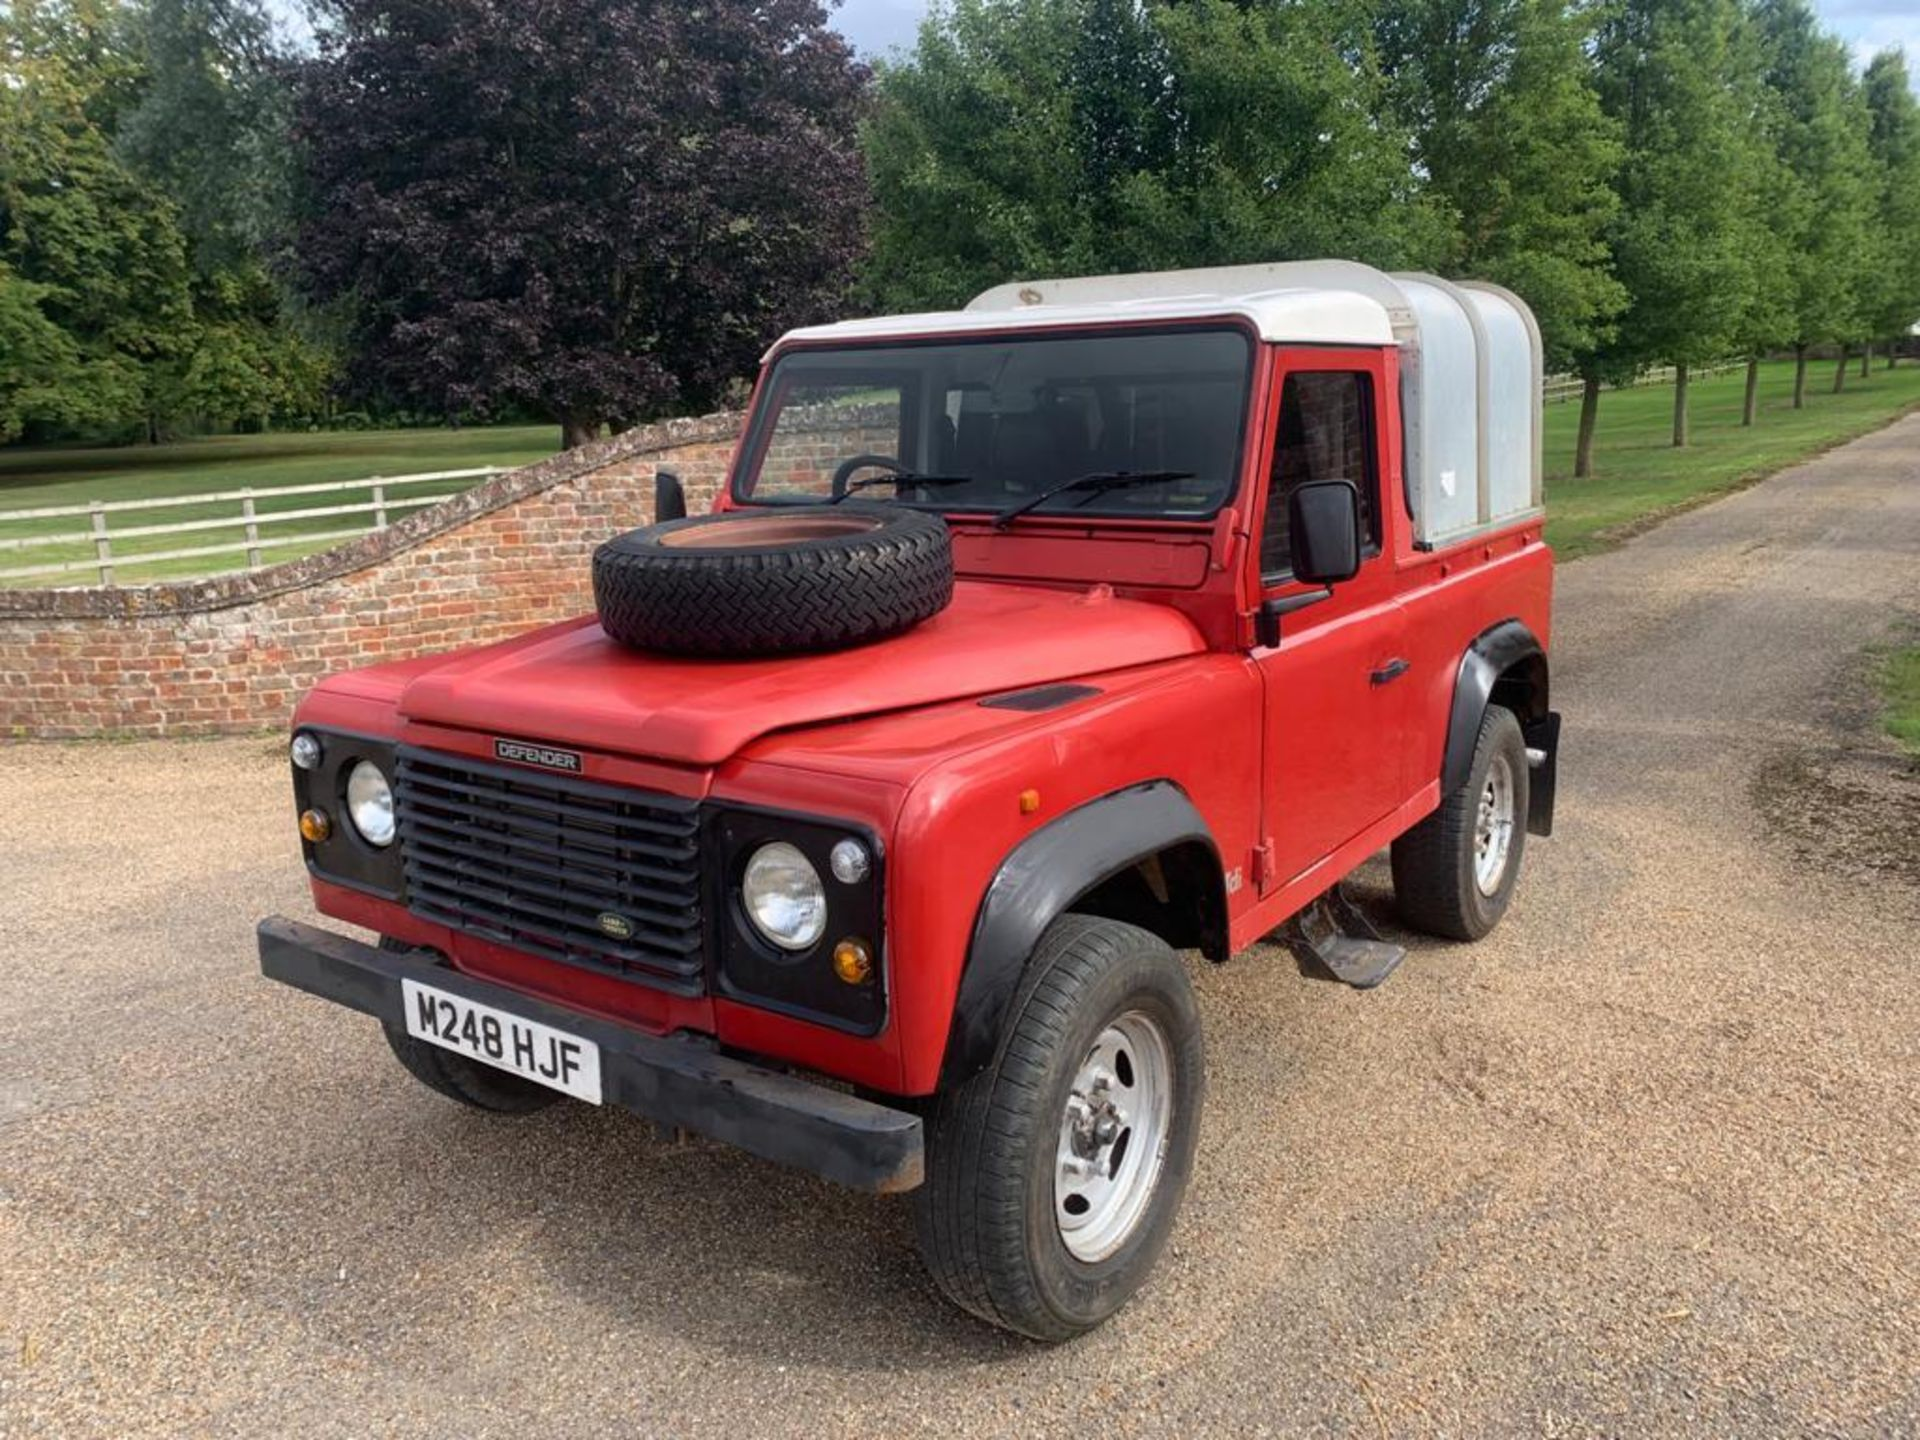 1994 LAND ROVER 90 DEFENDER TDI **ONE OWNER FROM NEW** - Image 3 of 17